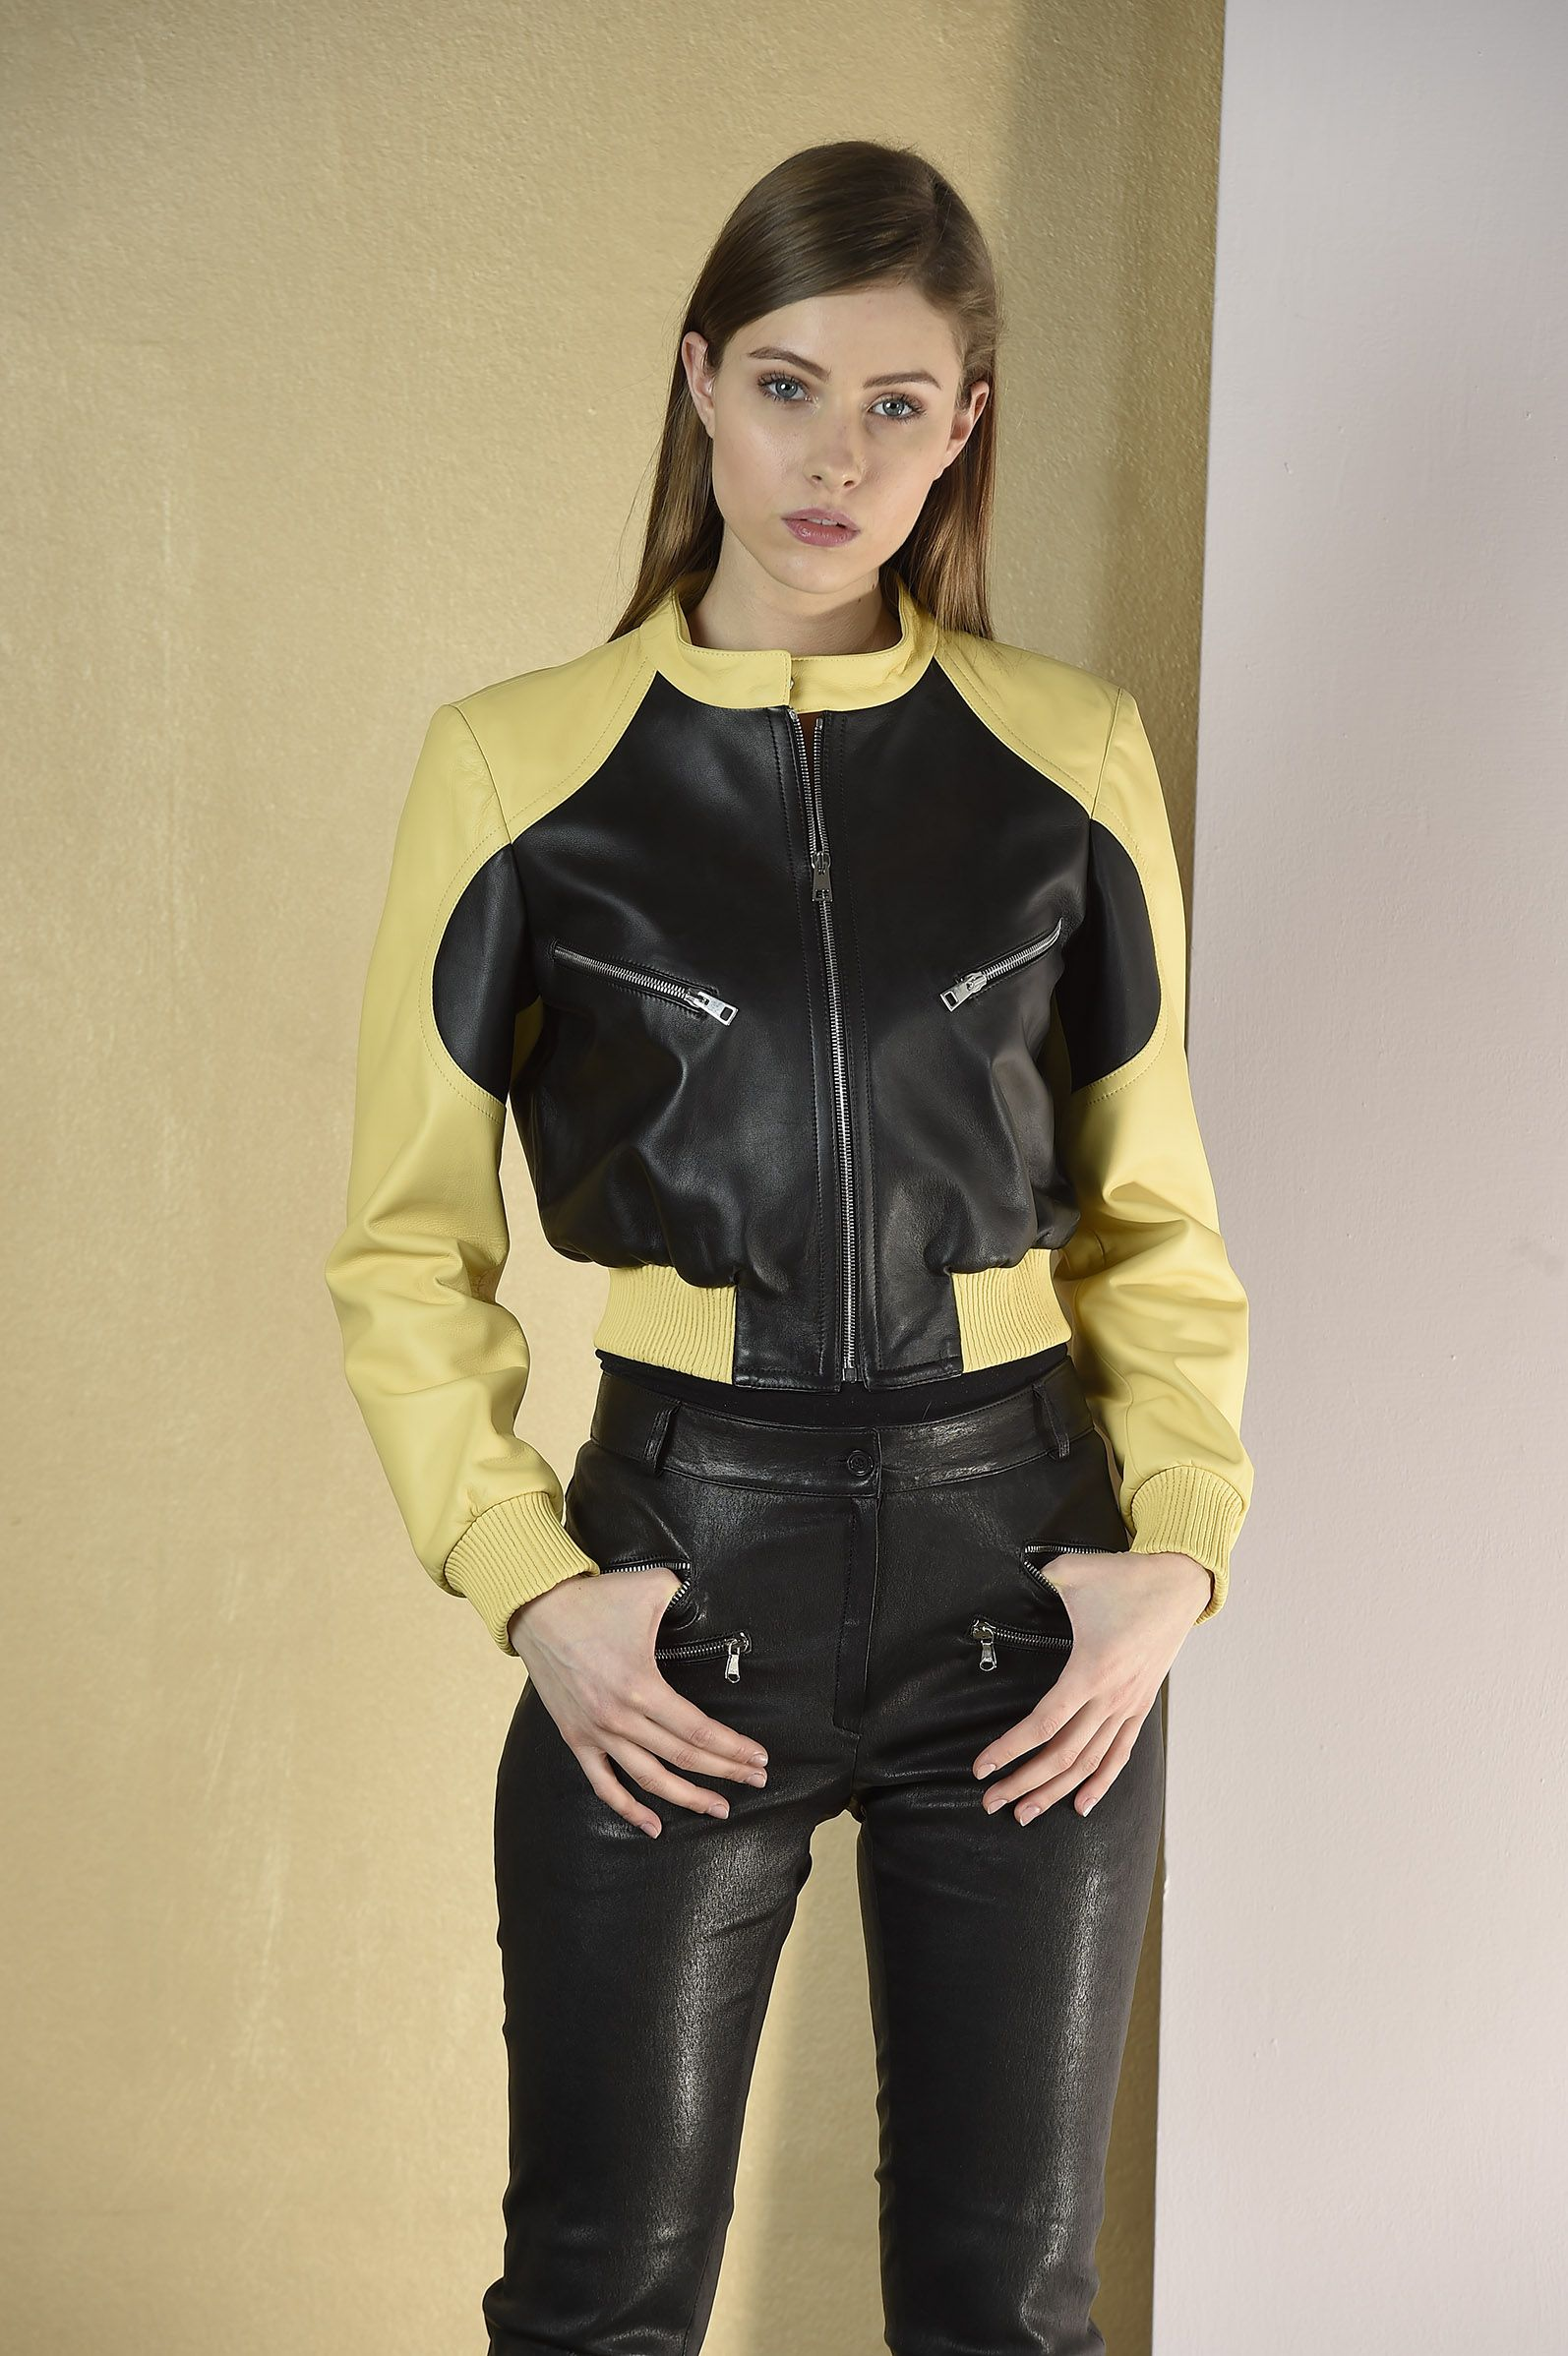 Black And Yellow Leather Jacket With Leather Pants Leather Jackets Women Leather Jacket Style Leather Outfit [ 2395 x 1594 Pixel ]